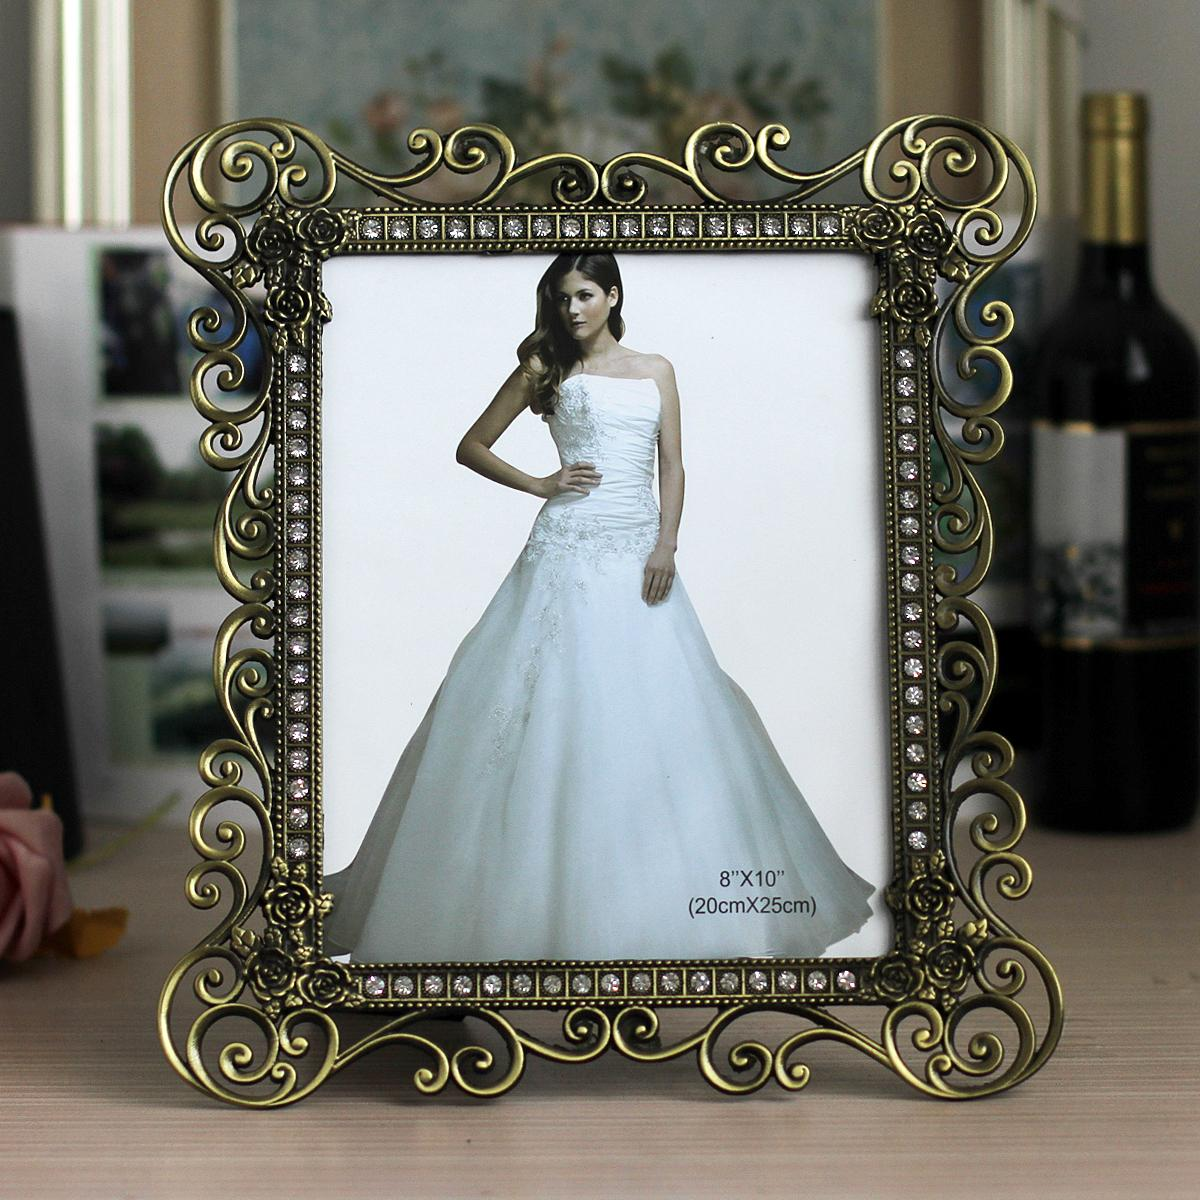 7 Inch Metal Hanging Photo Picture Frames White Modern